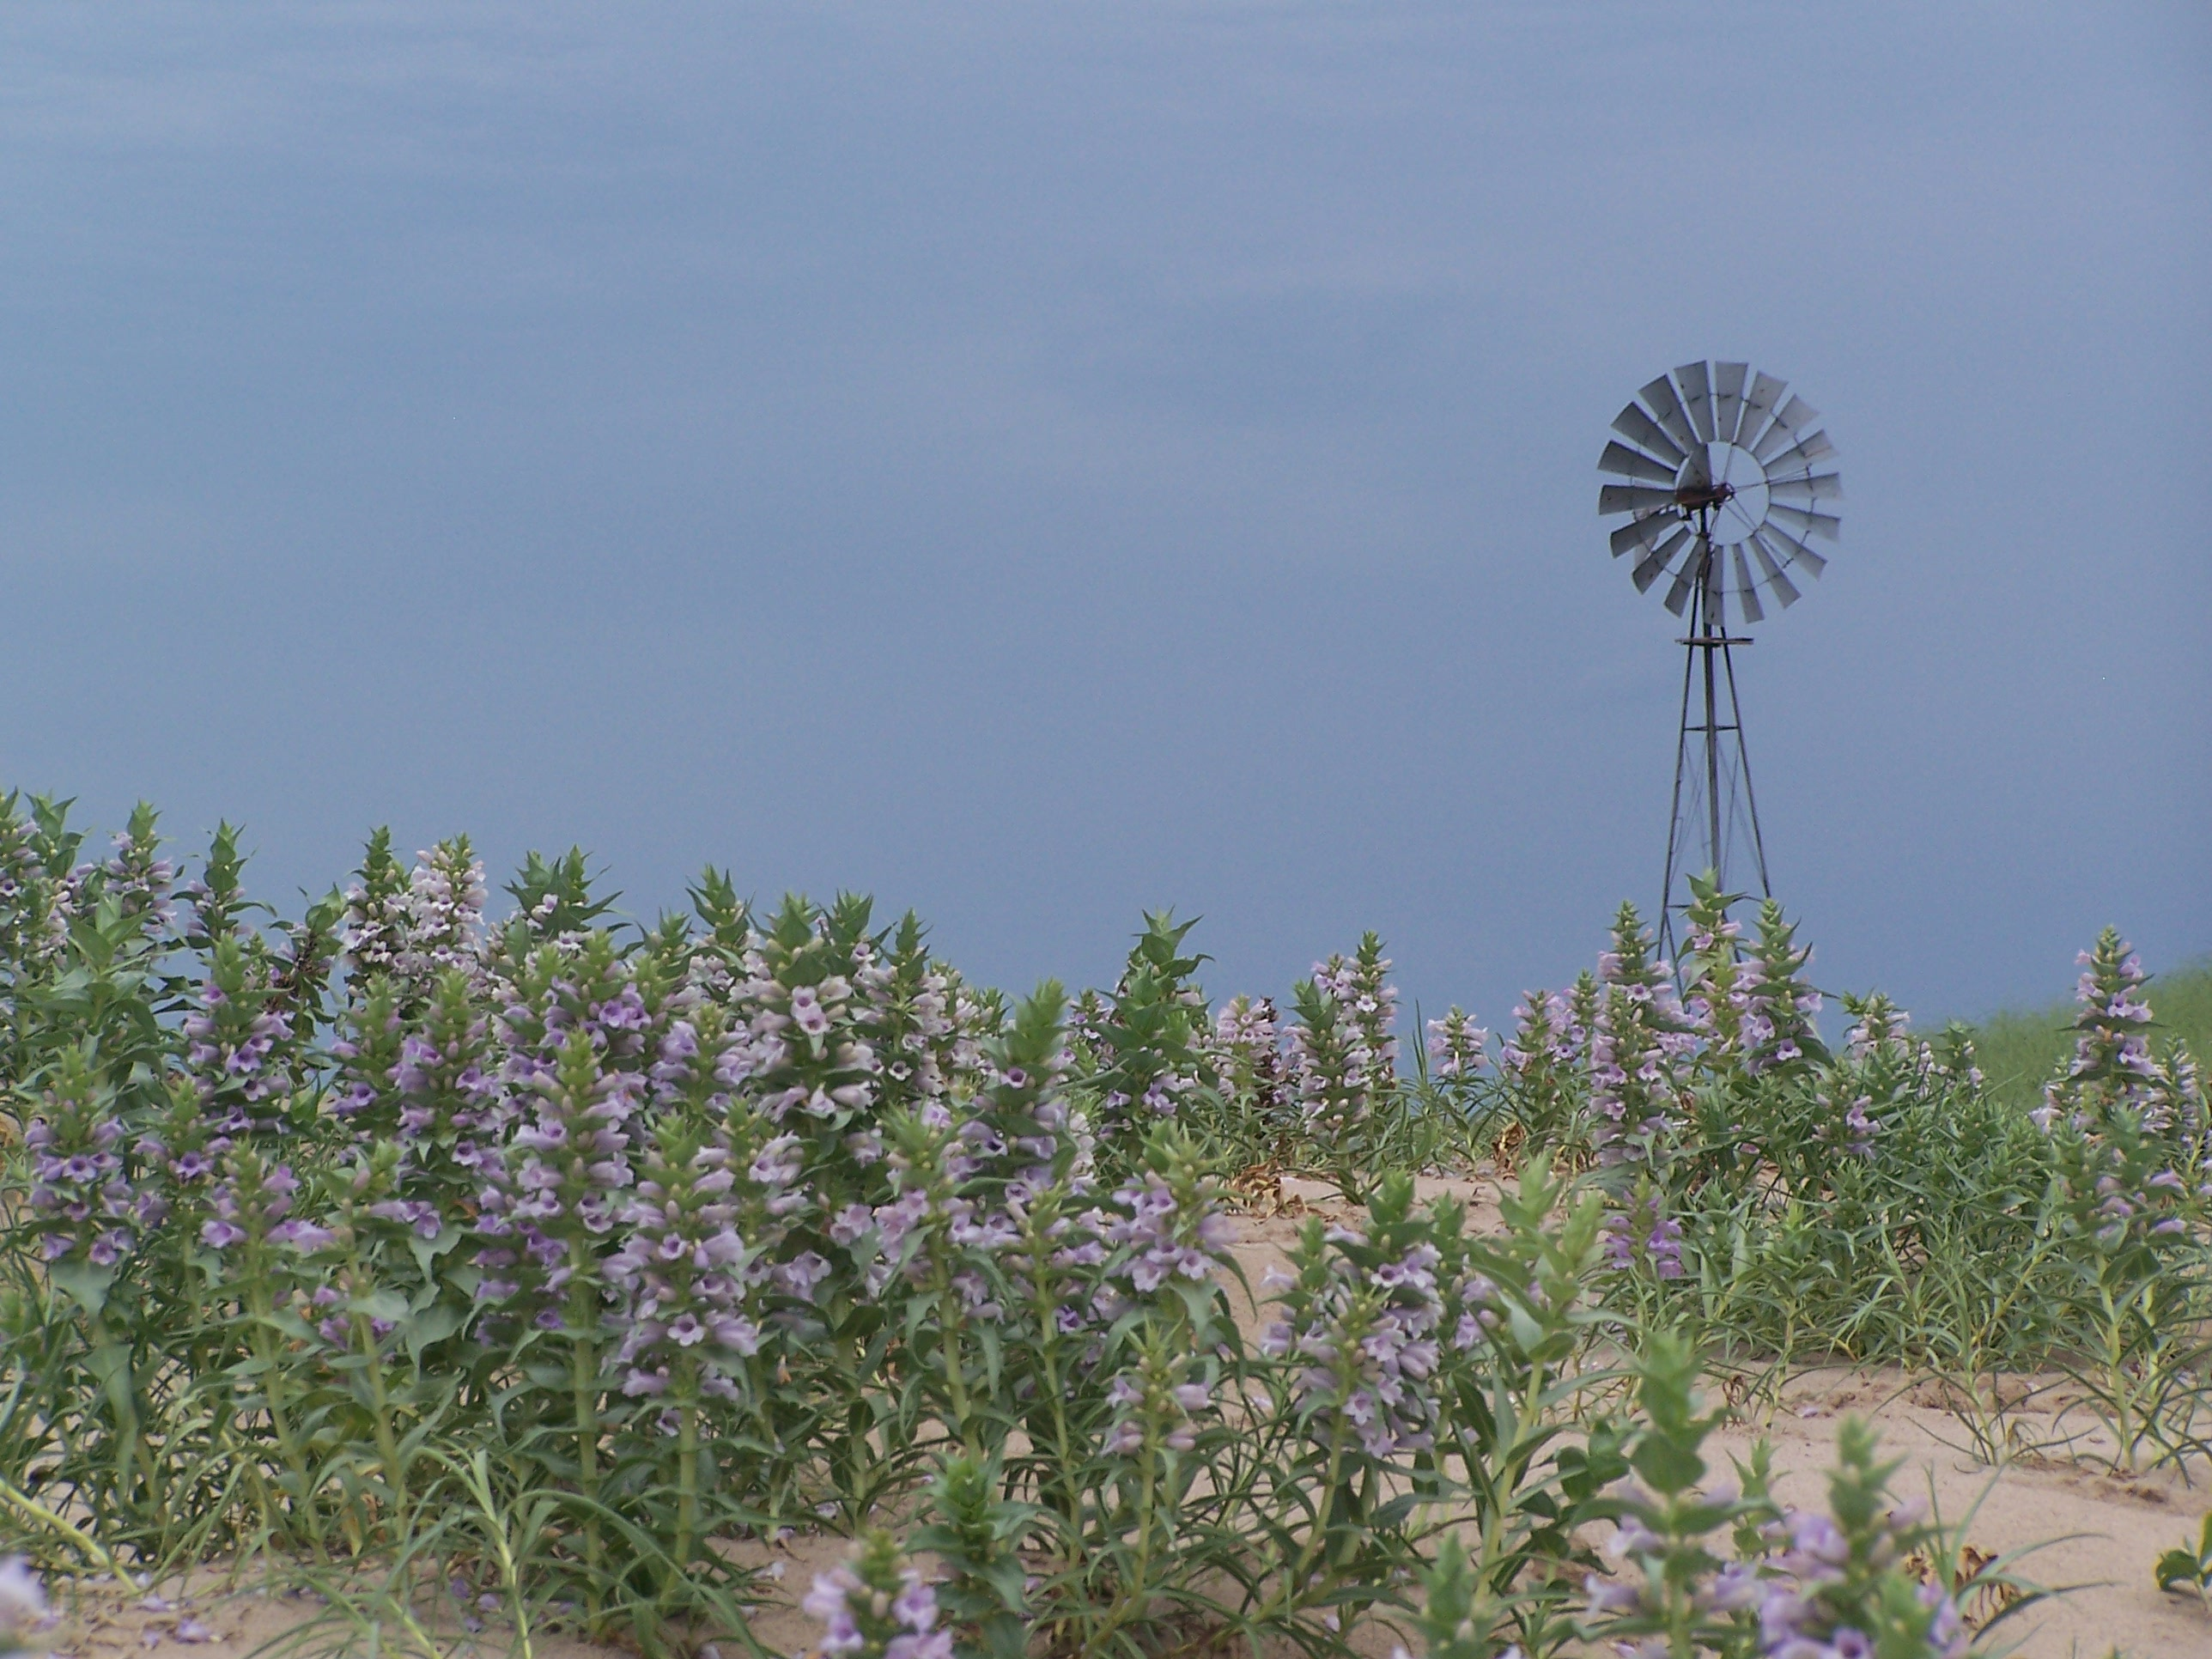 Purple blowout penstemon surround a windmill.